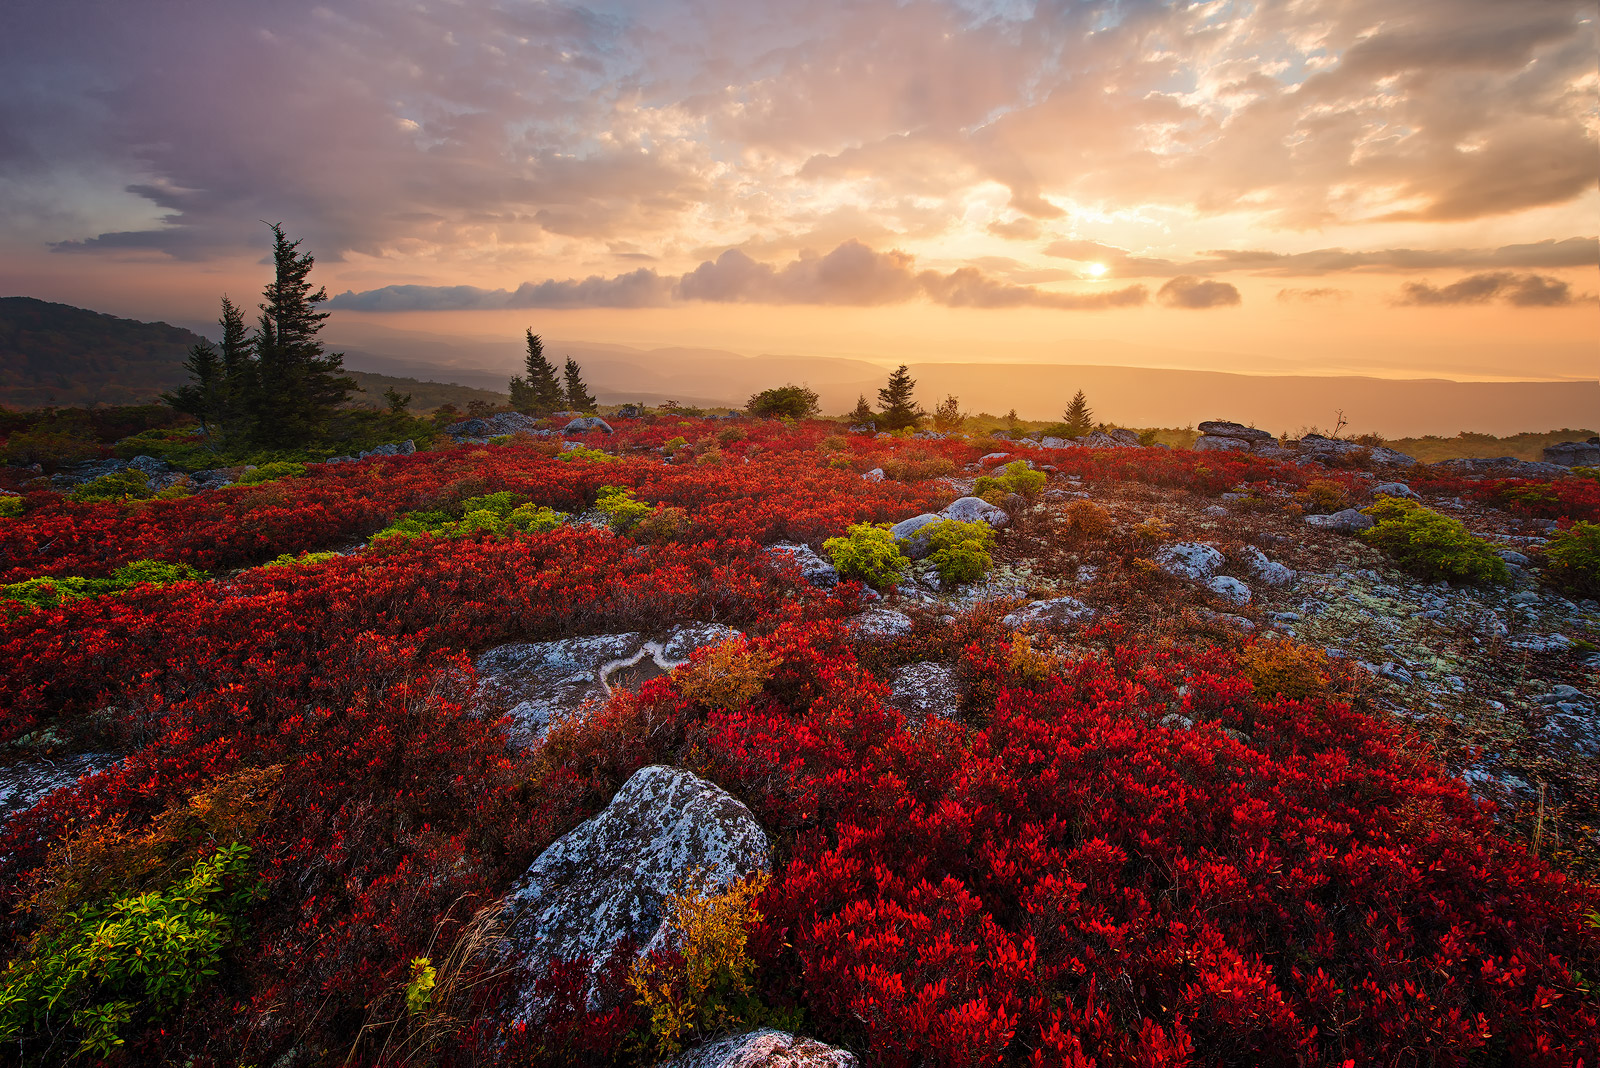 West Virginia, Bear Rocks, Dolly Sods Wilderness, Canaan Valley, Hemlock, Mountain Laurel, Dolly Sods, Allegheny Mountains, Bear Rocks Preserve, Monongahela National Forest, Foggy Morning, Fog, Sun, photo